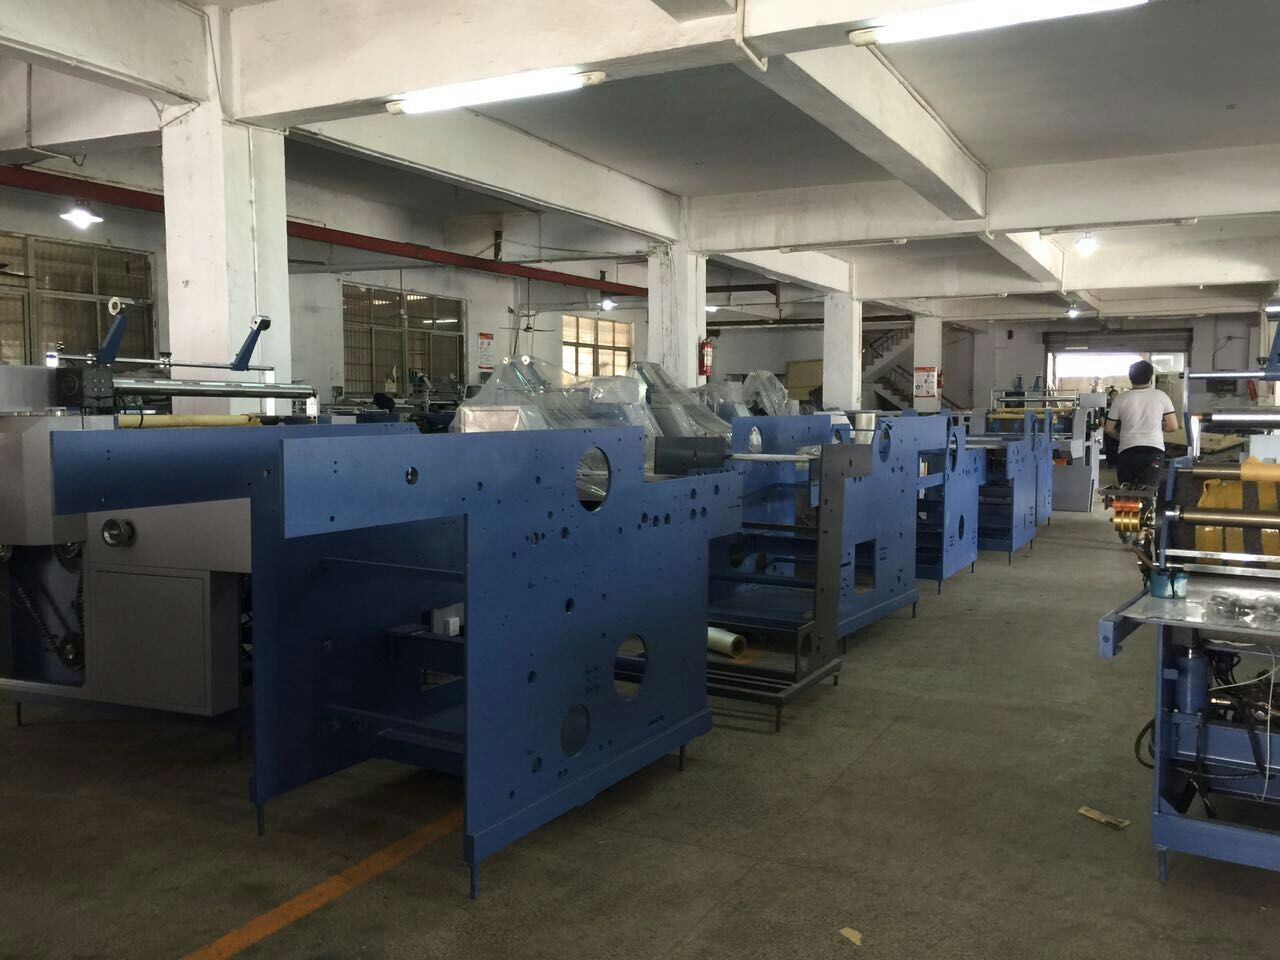 Wenzhou Fully Automatic Laminator Yfma-920A/1050A for Paper, Big Fully Automatic Laminator with Electromagnetic Heating System pictures & photos